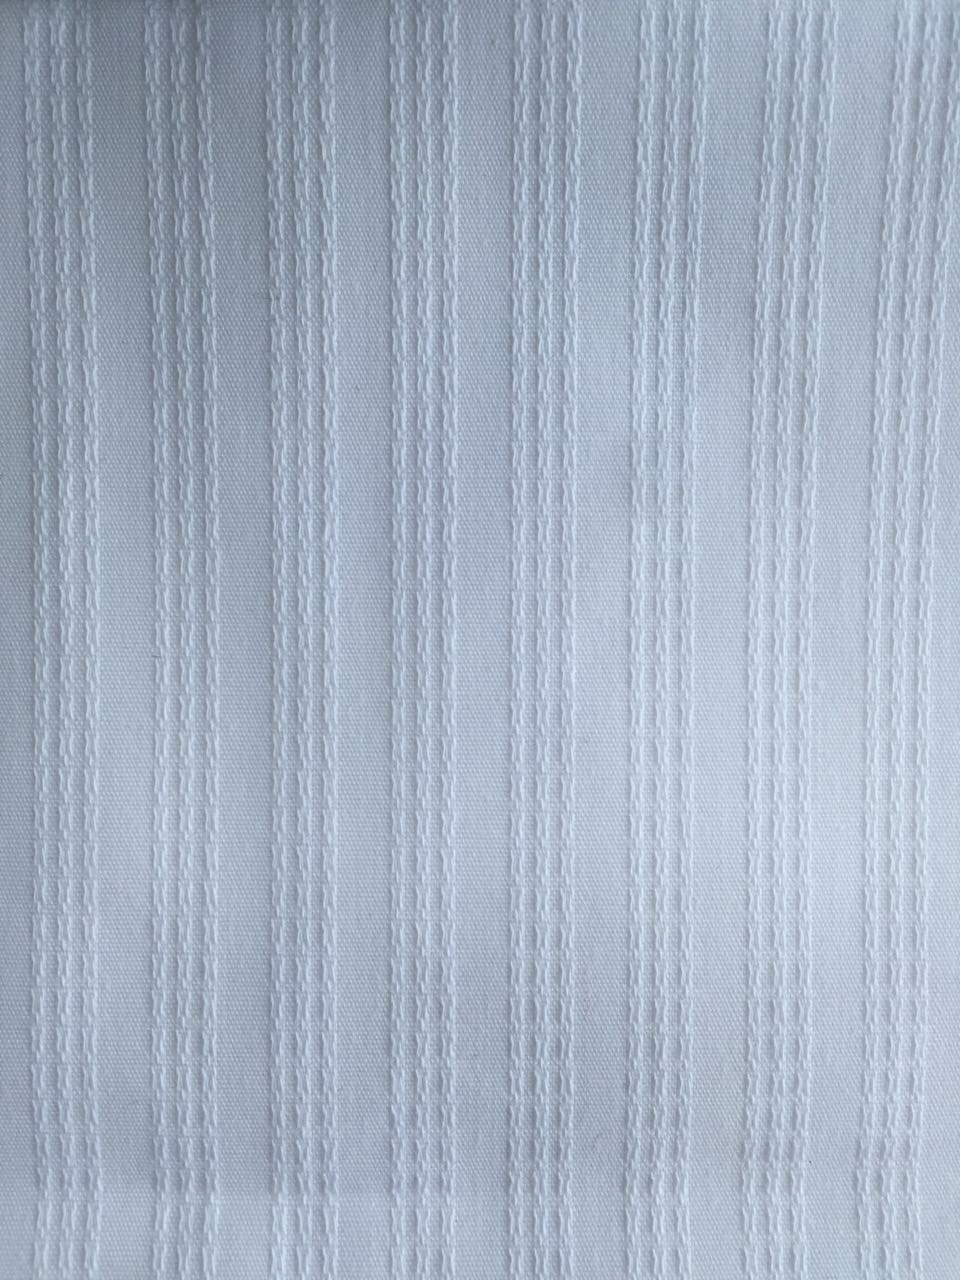 Taekwondo uniform three stripe fabric